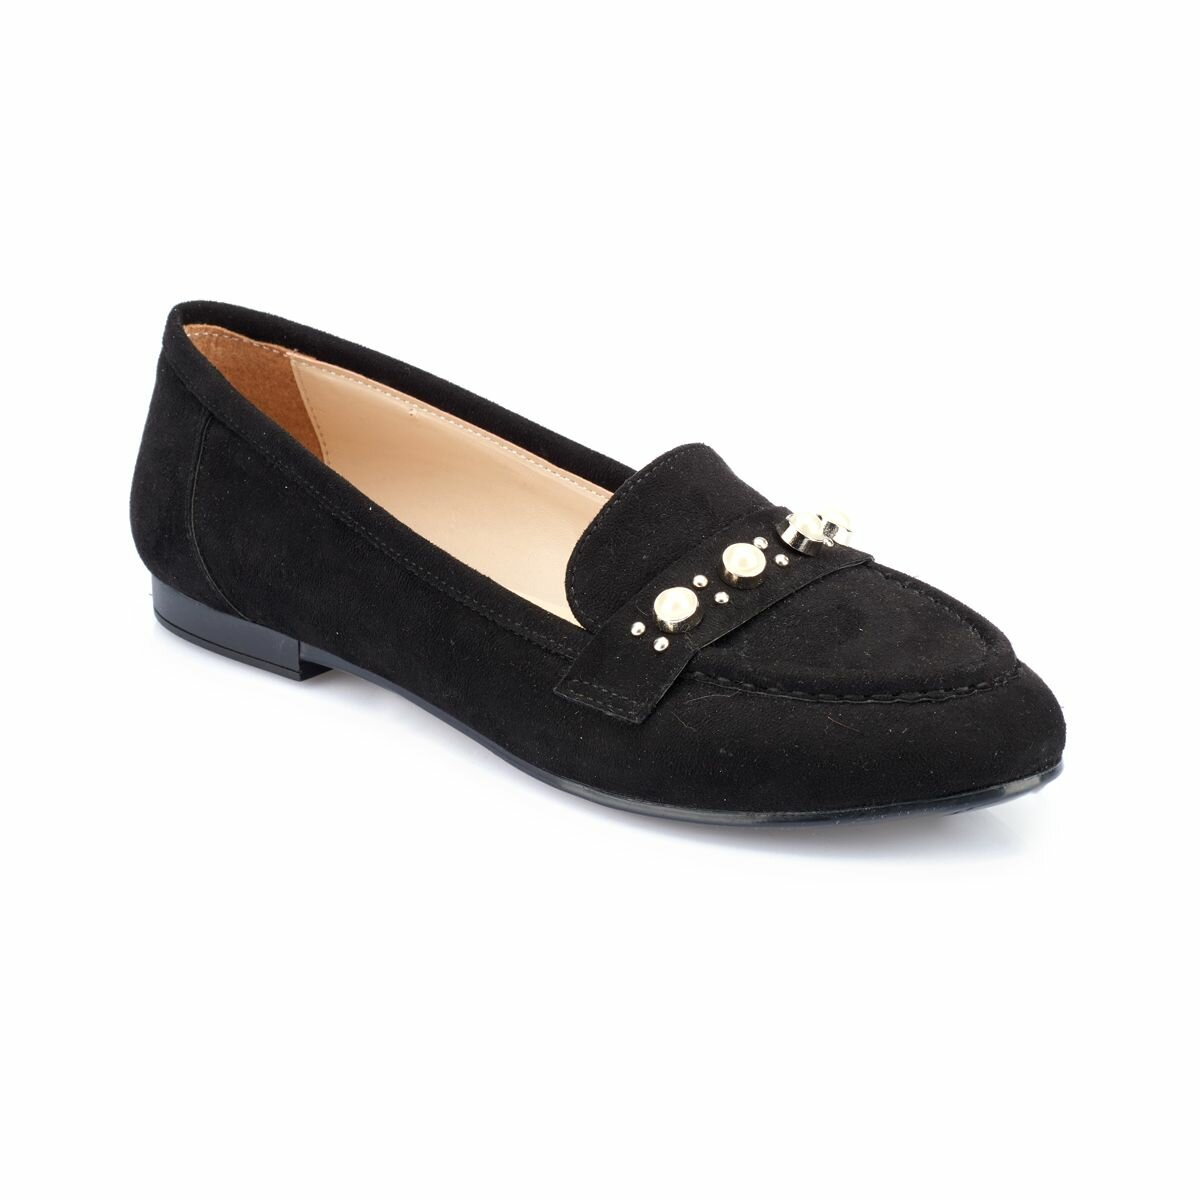 FLO 82.312019SZ Black Women Loafer Shoes Polaris